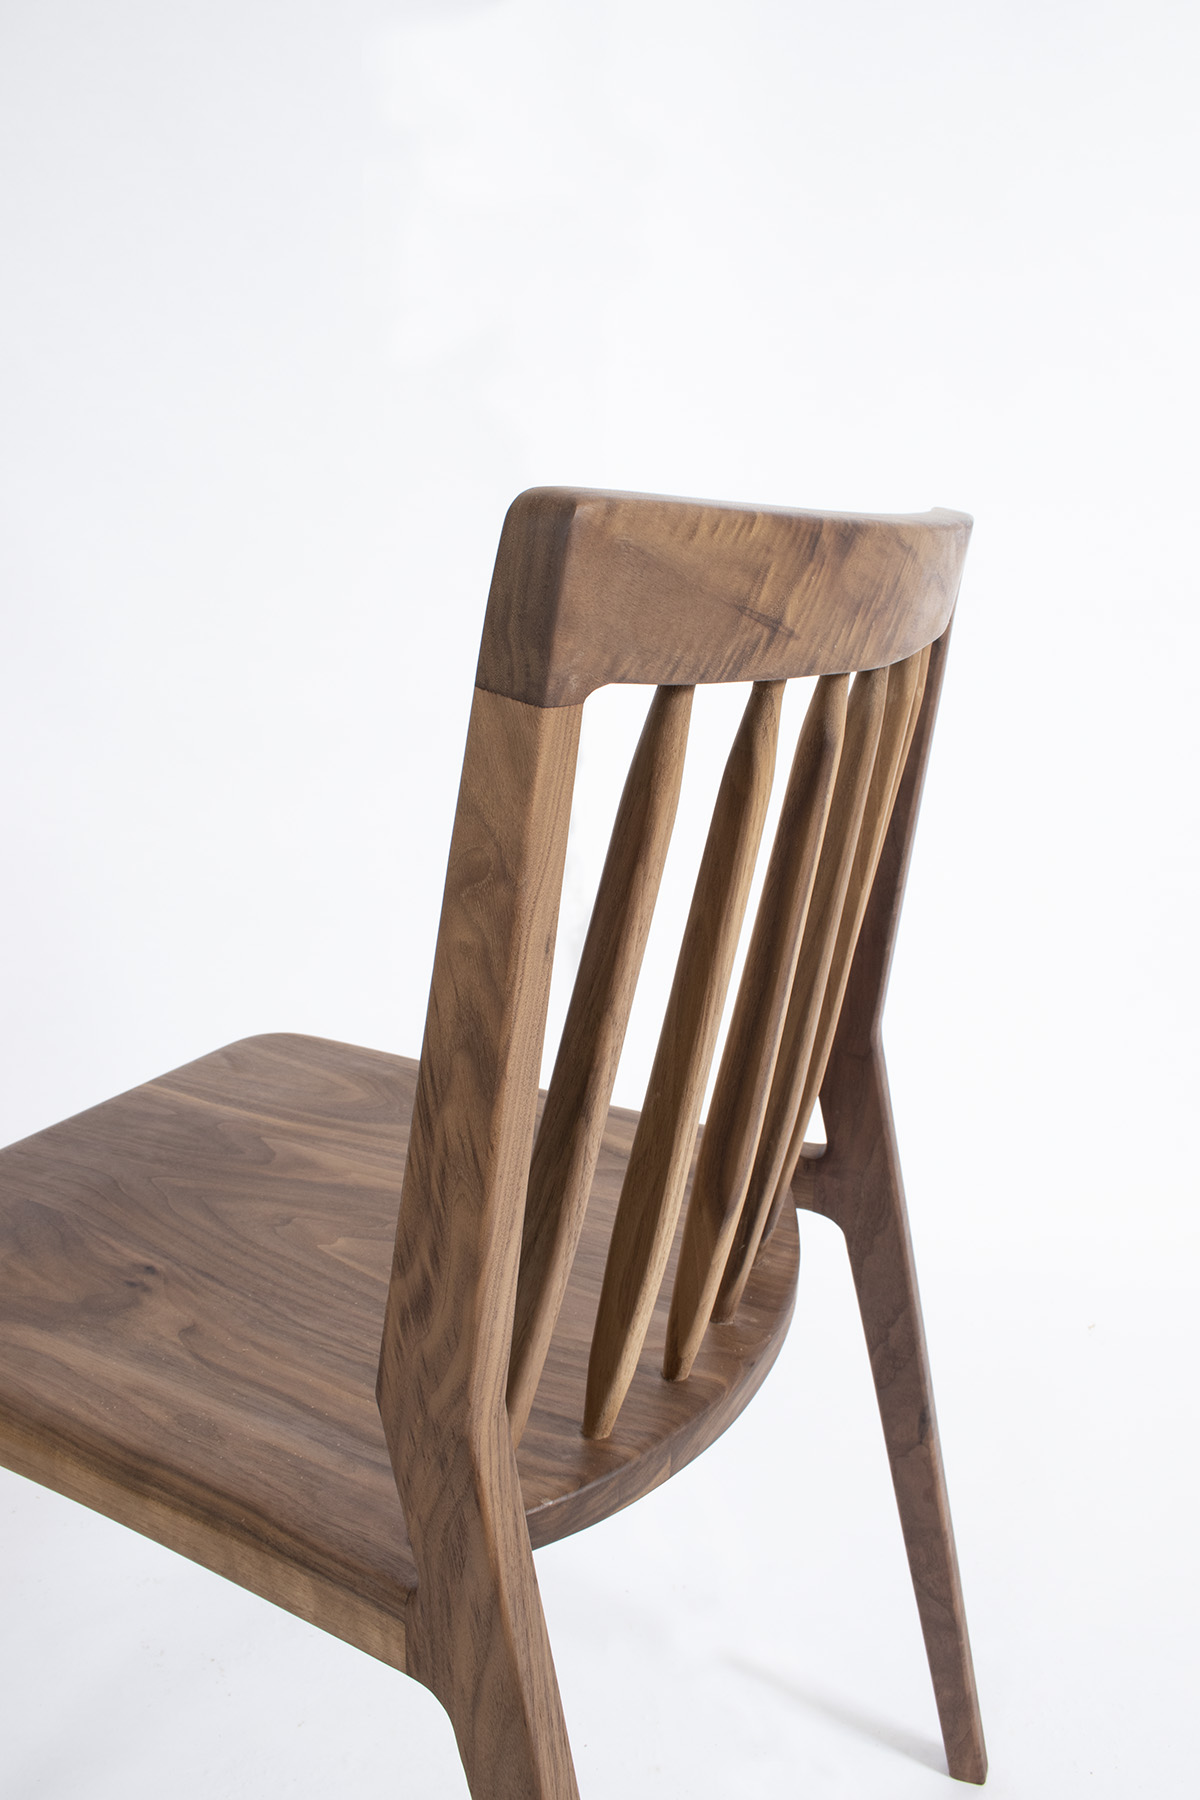 furniture maker bristol, bespoke furniture, chair maker, built in furniture bristol